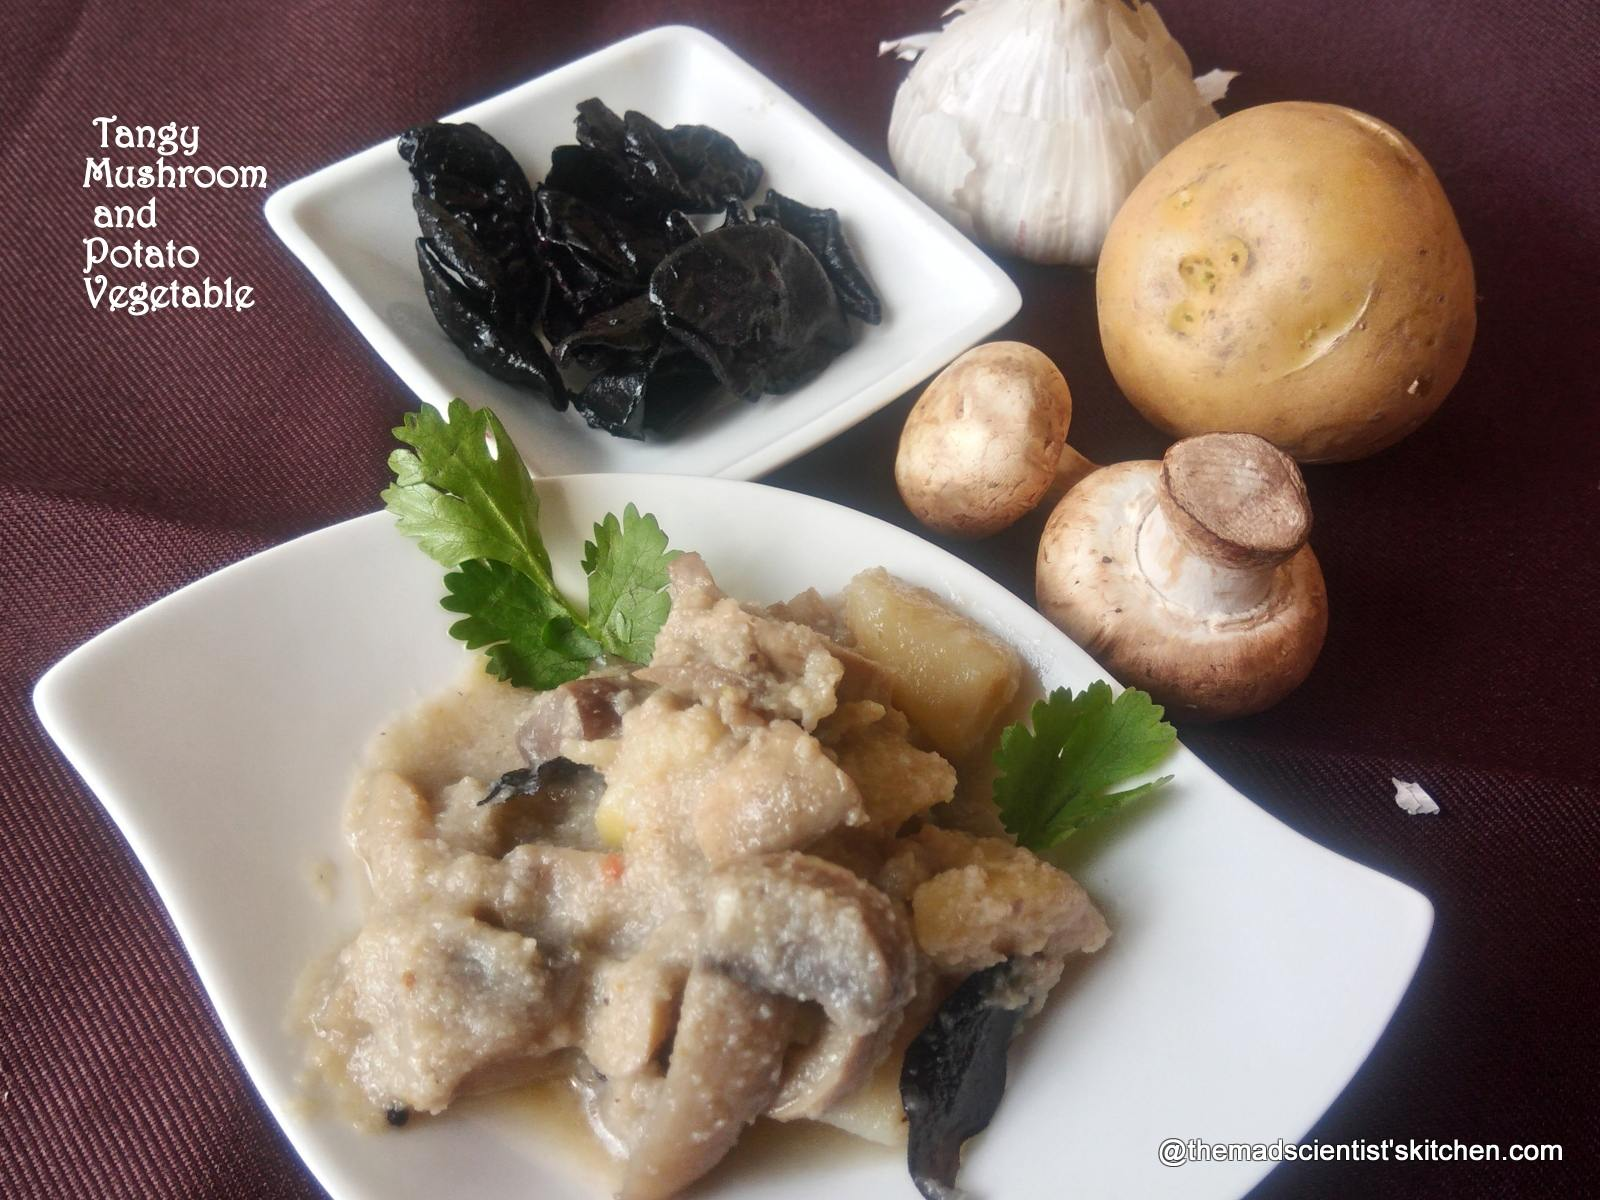 Almi ani Batat che Ambat Tangy Mushroom and Potato Vegetable Recipe